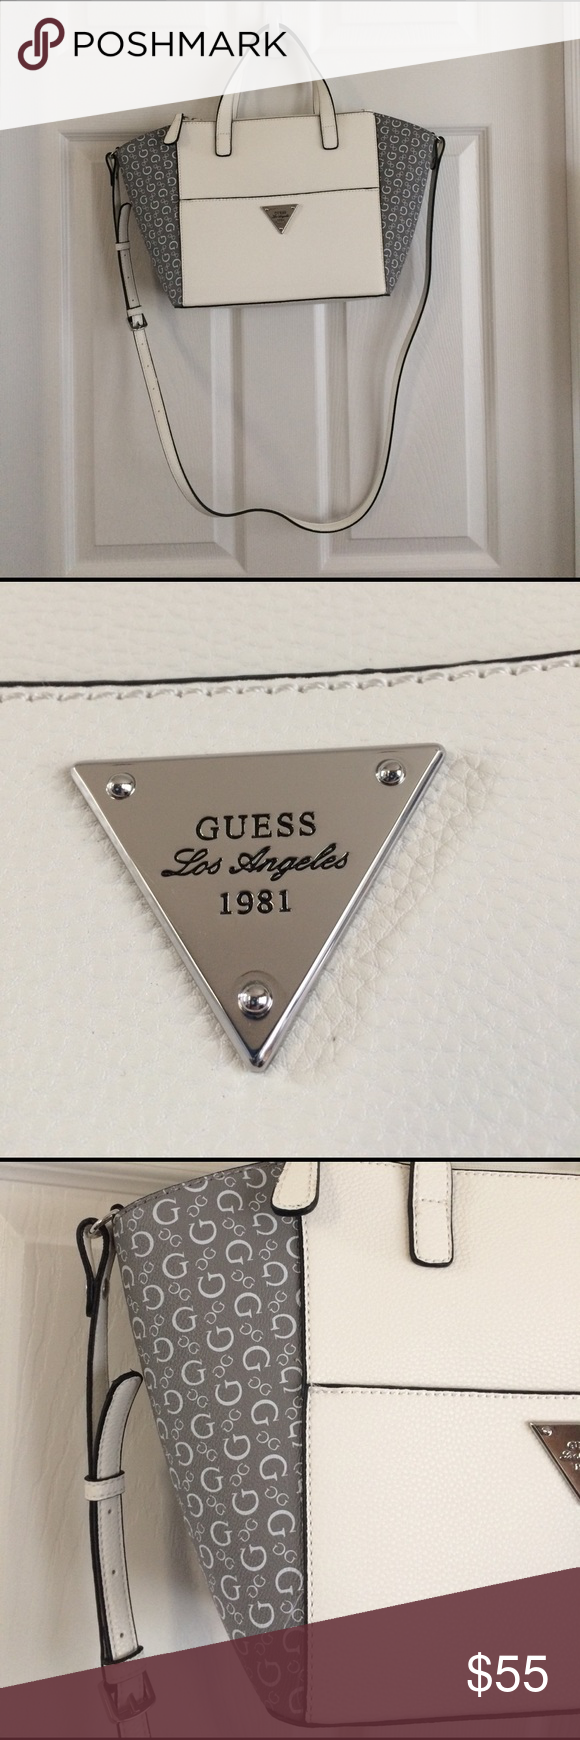 Guess bag New with tags. Guess bag NWT. White and silver in color. 7 pockets and 3 of them with zipper. 2 short handles and one long one that can be removed when wanted. Got as a gift for Christmas and was never used. Guess Bags Shoulder Bags